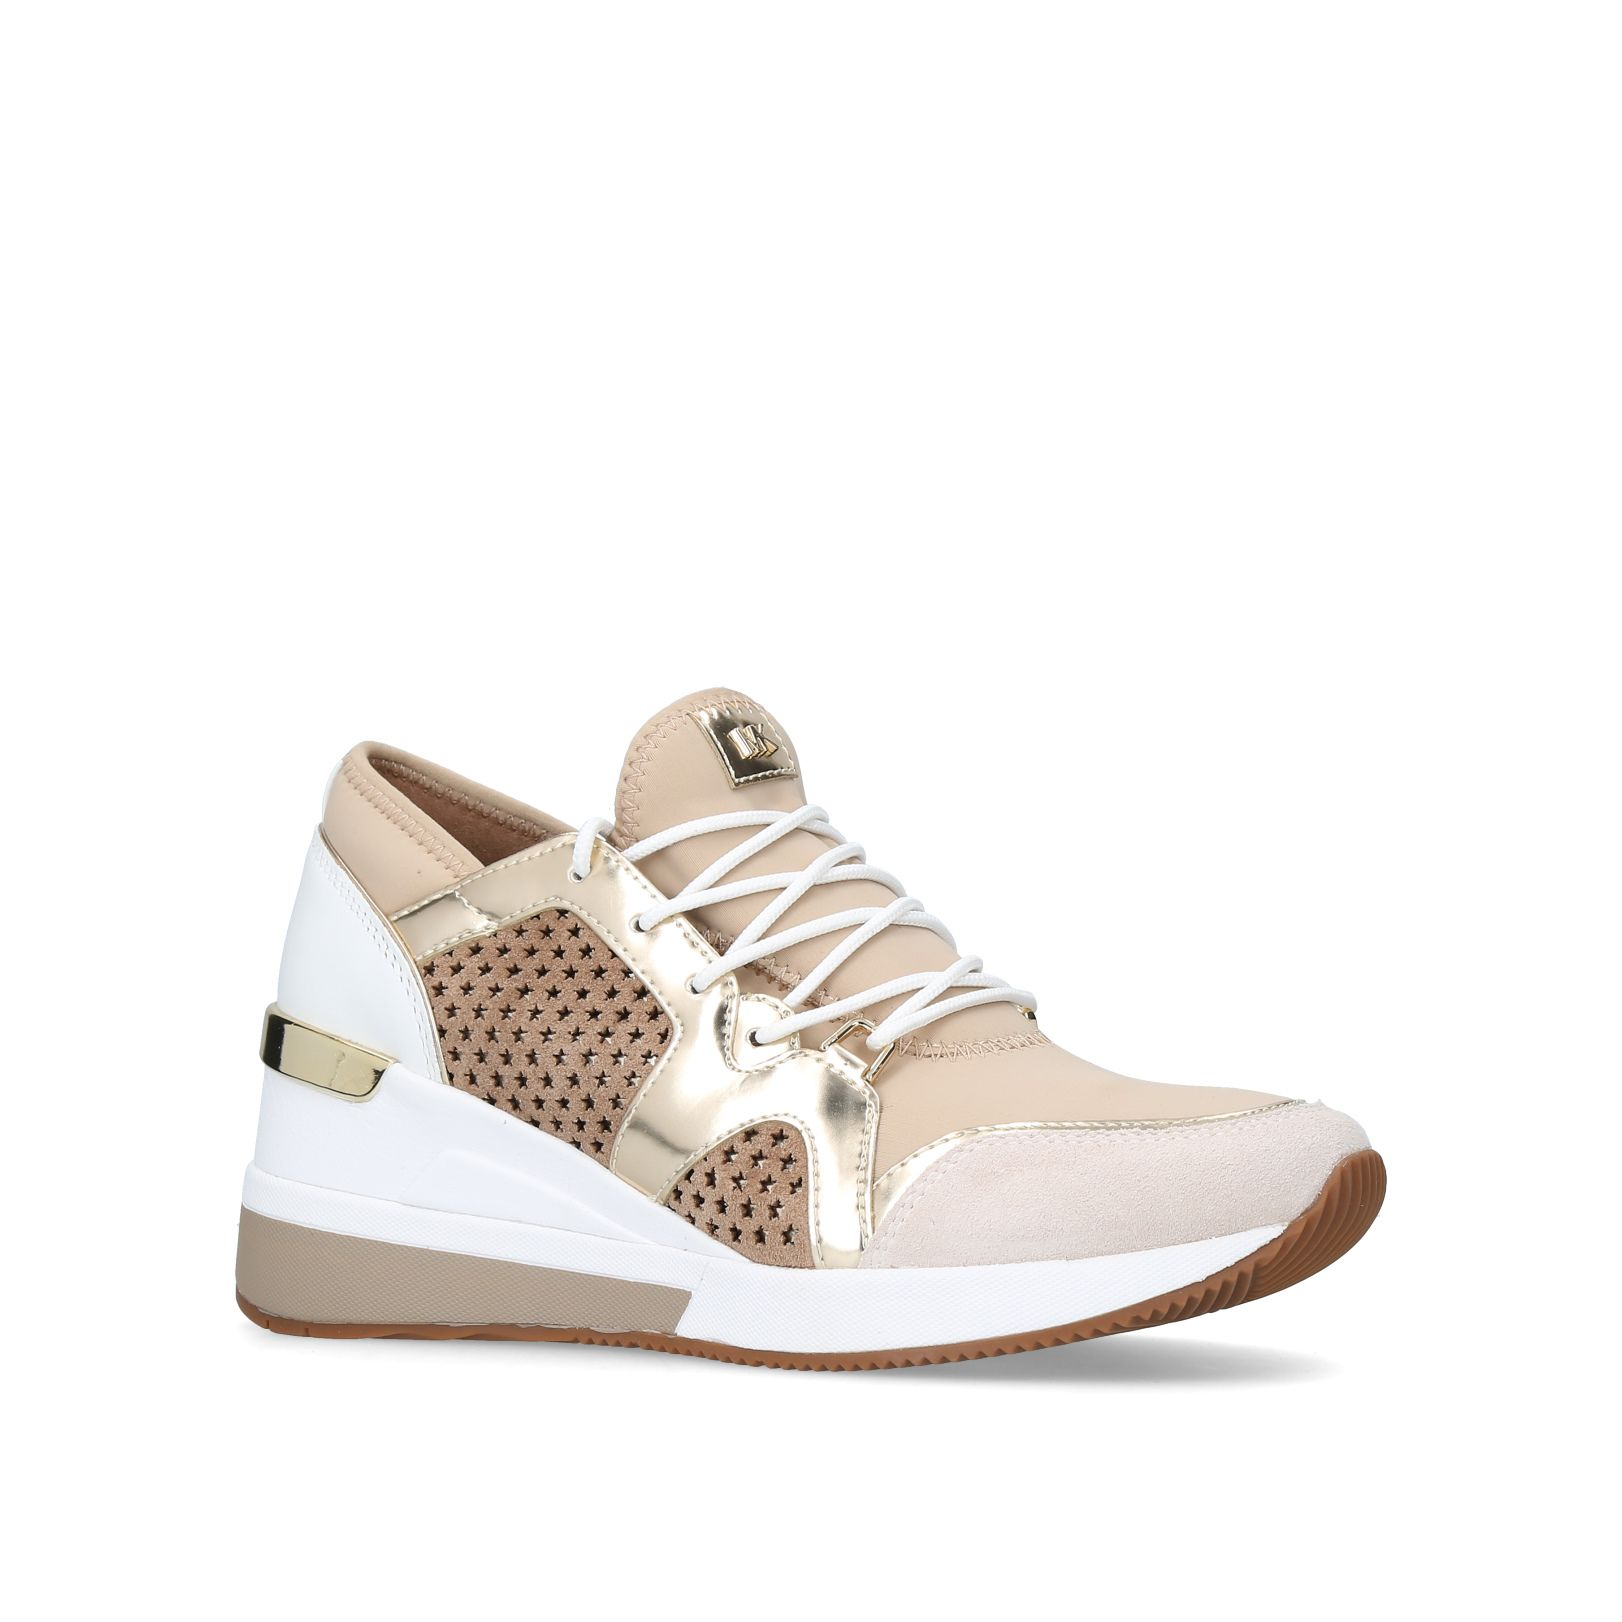 Michael Kors Scout Trainer Trainers, White